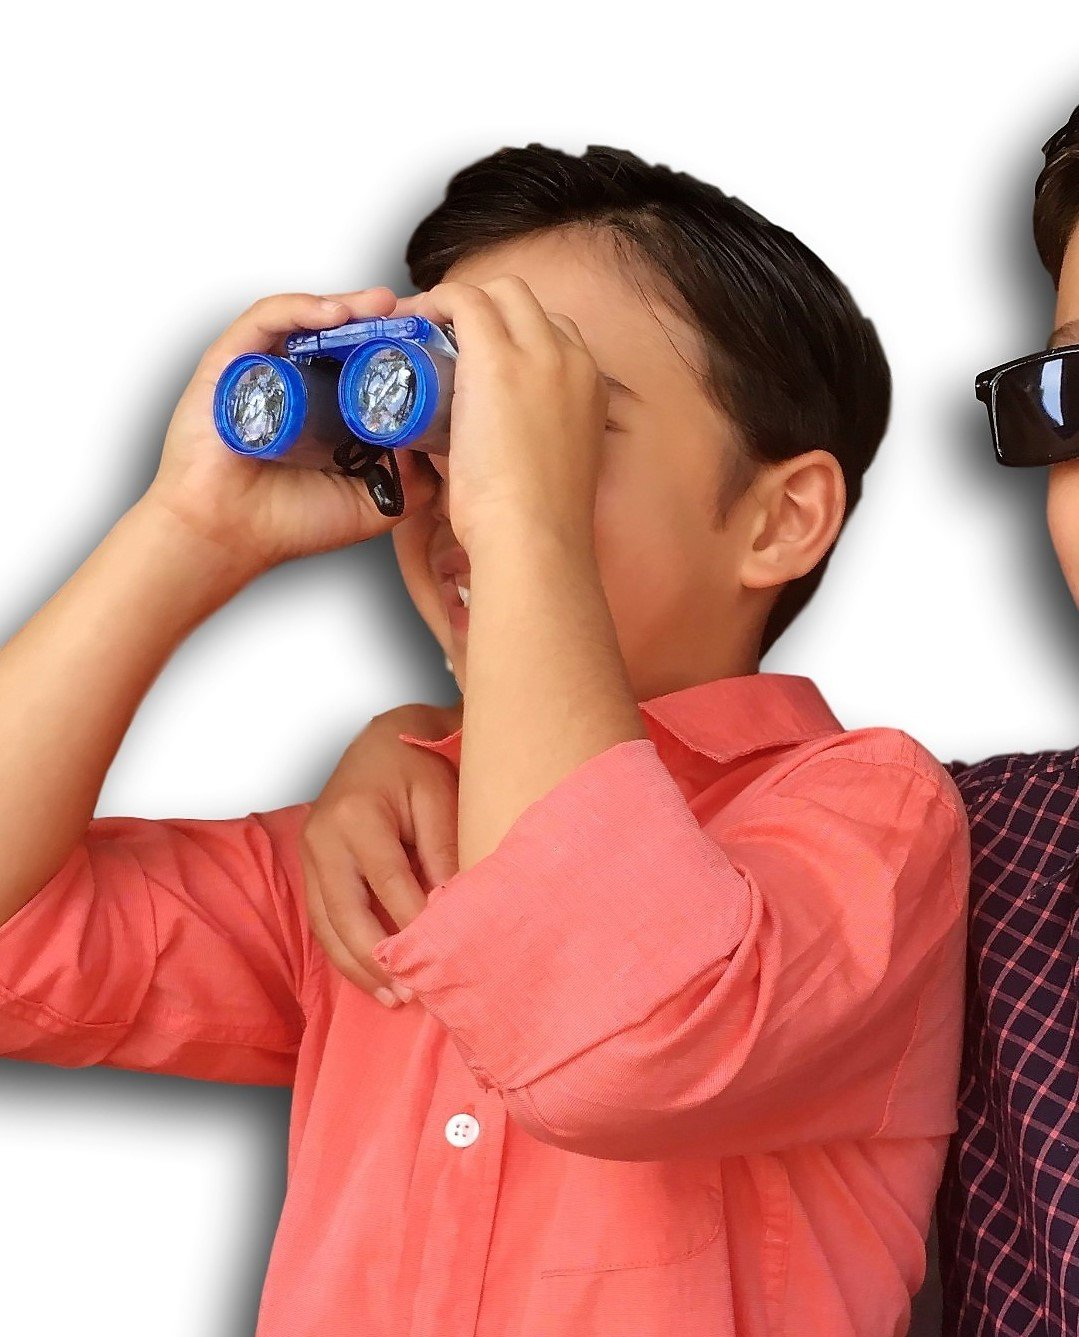 JA-RU Binoculars Spy Gear Toys for All Ages Adjustable with Carry Cord Item #1500 Pack of 12